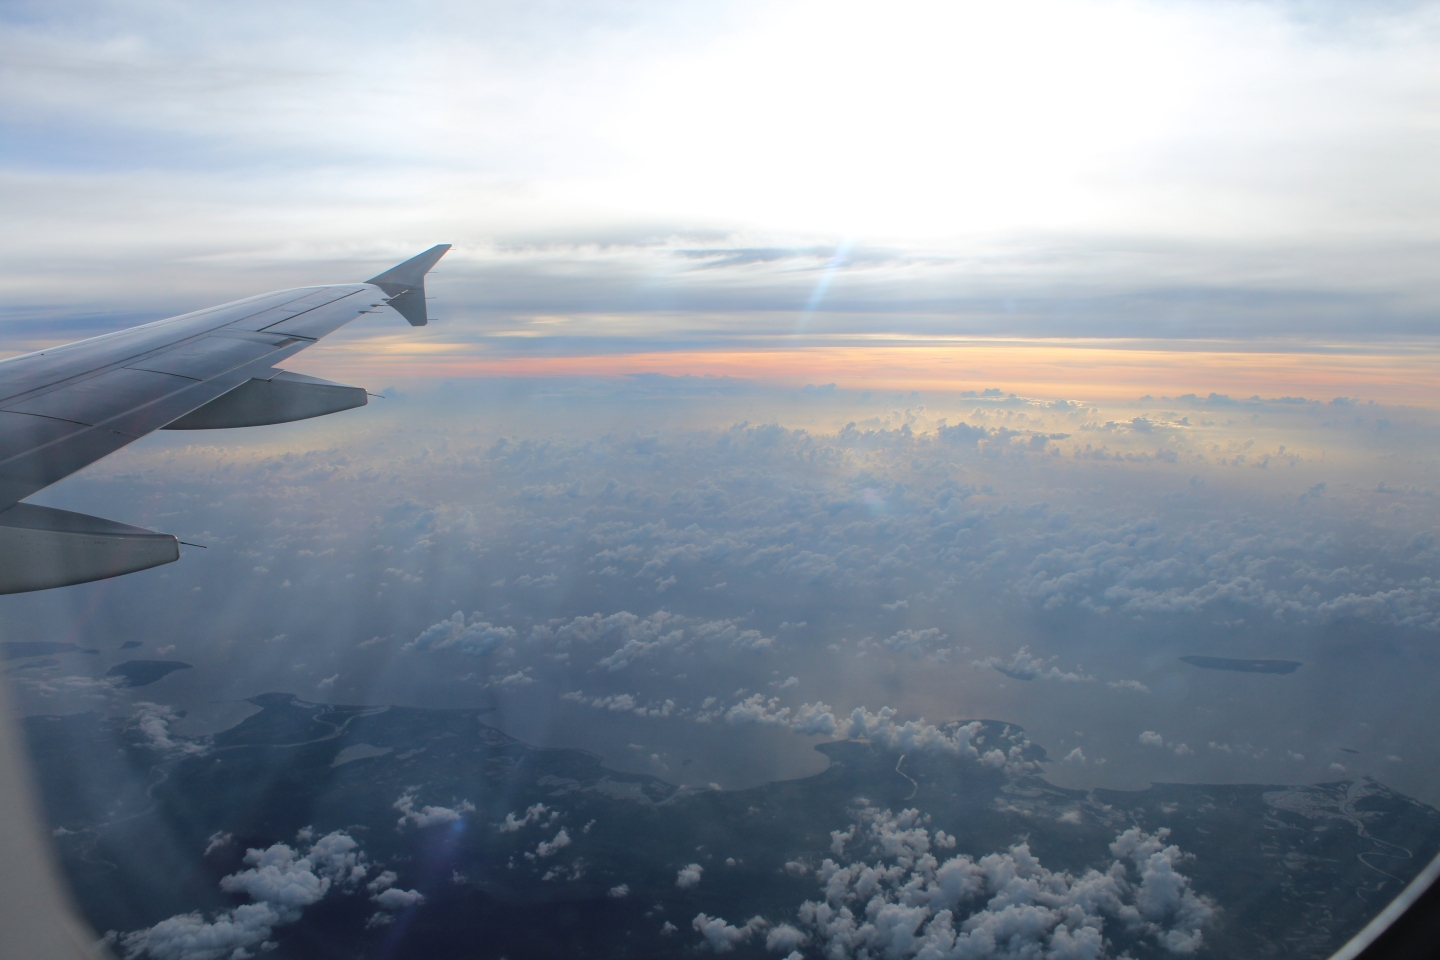 Wingtip, cloudtops over Luzon, Philippines